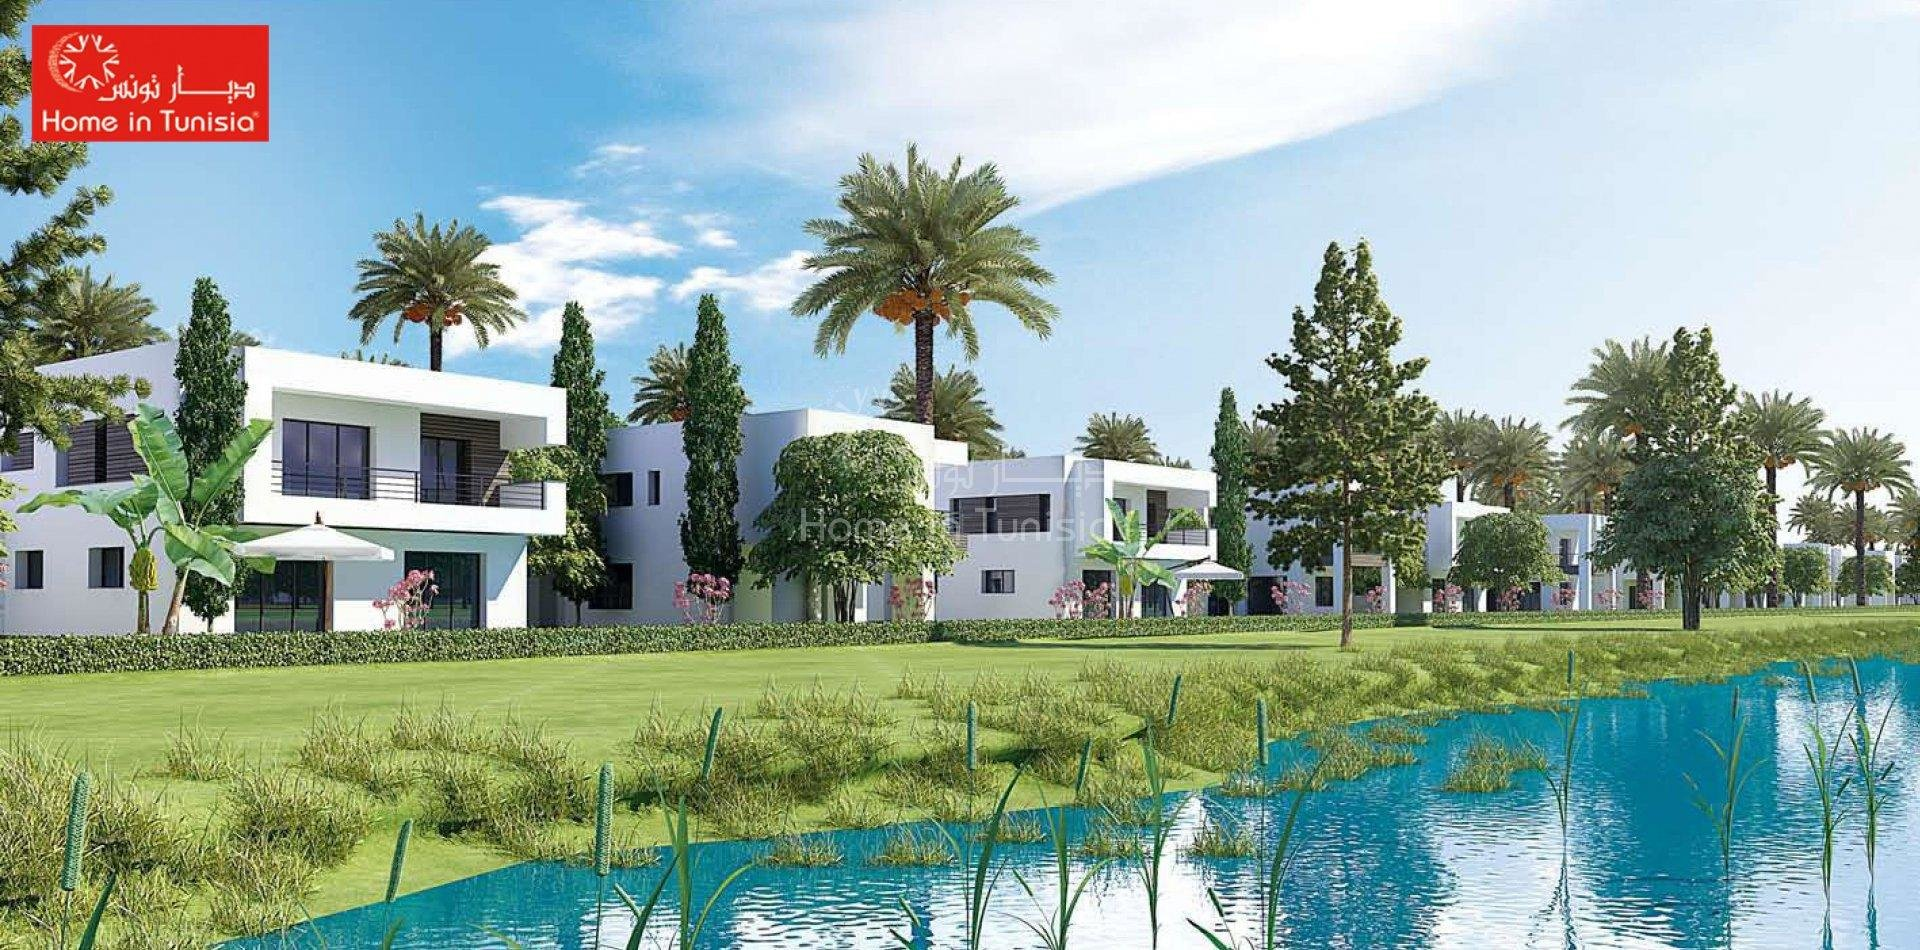 Large new detached villa overlooking the golf course with 4 bedrooms terrace garden pool